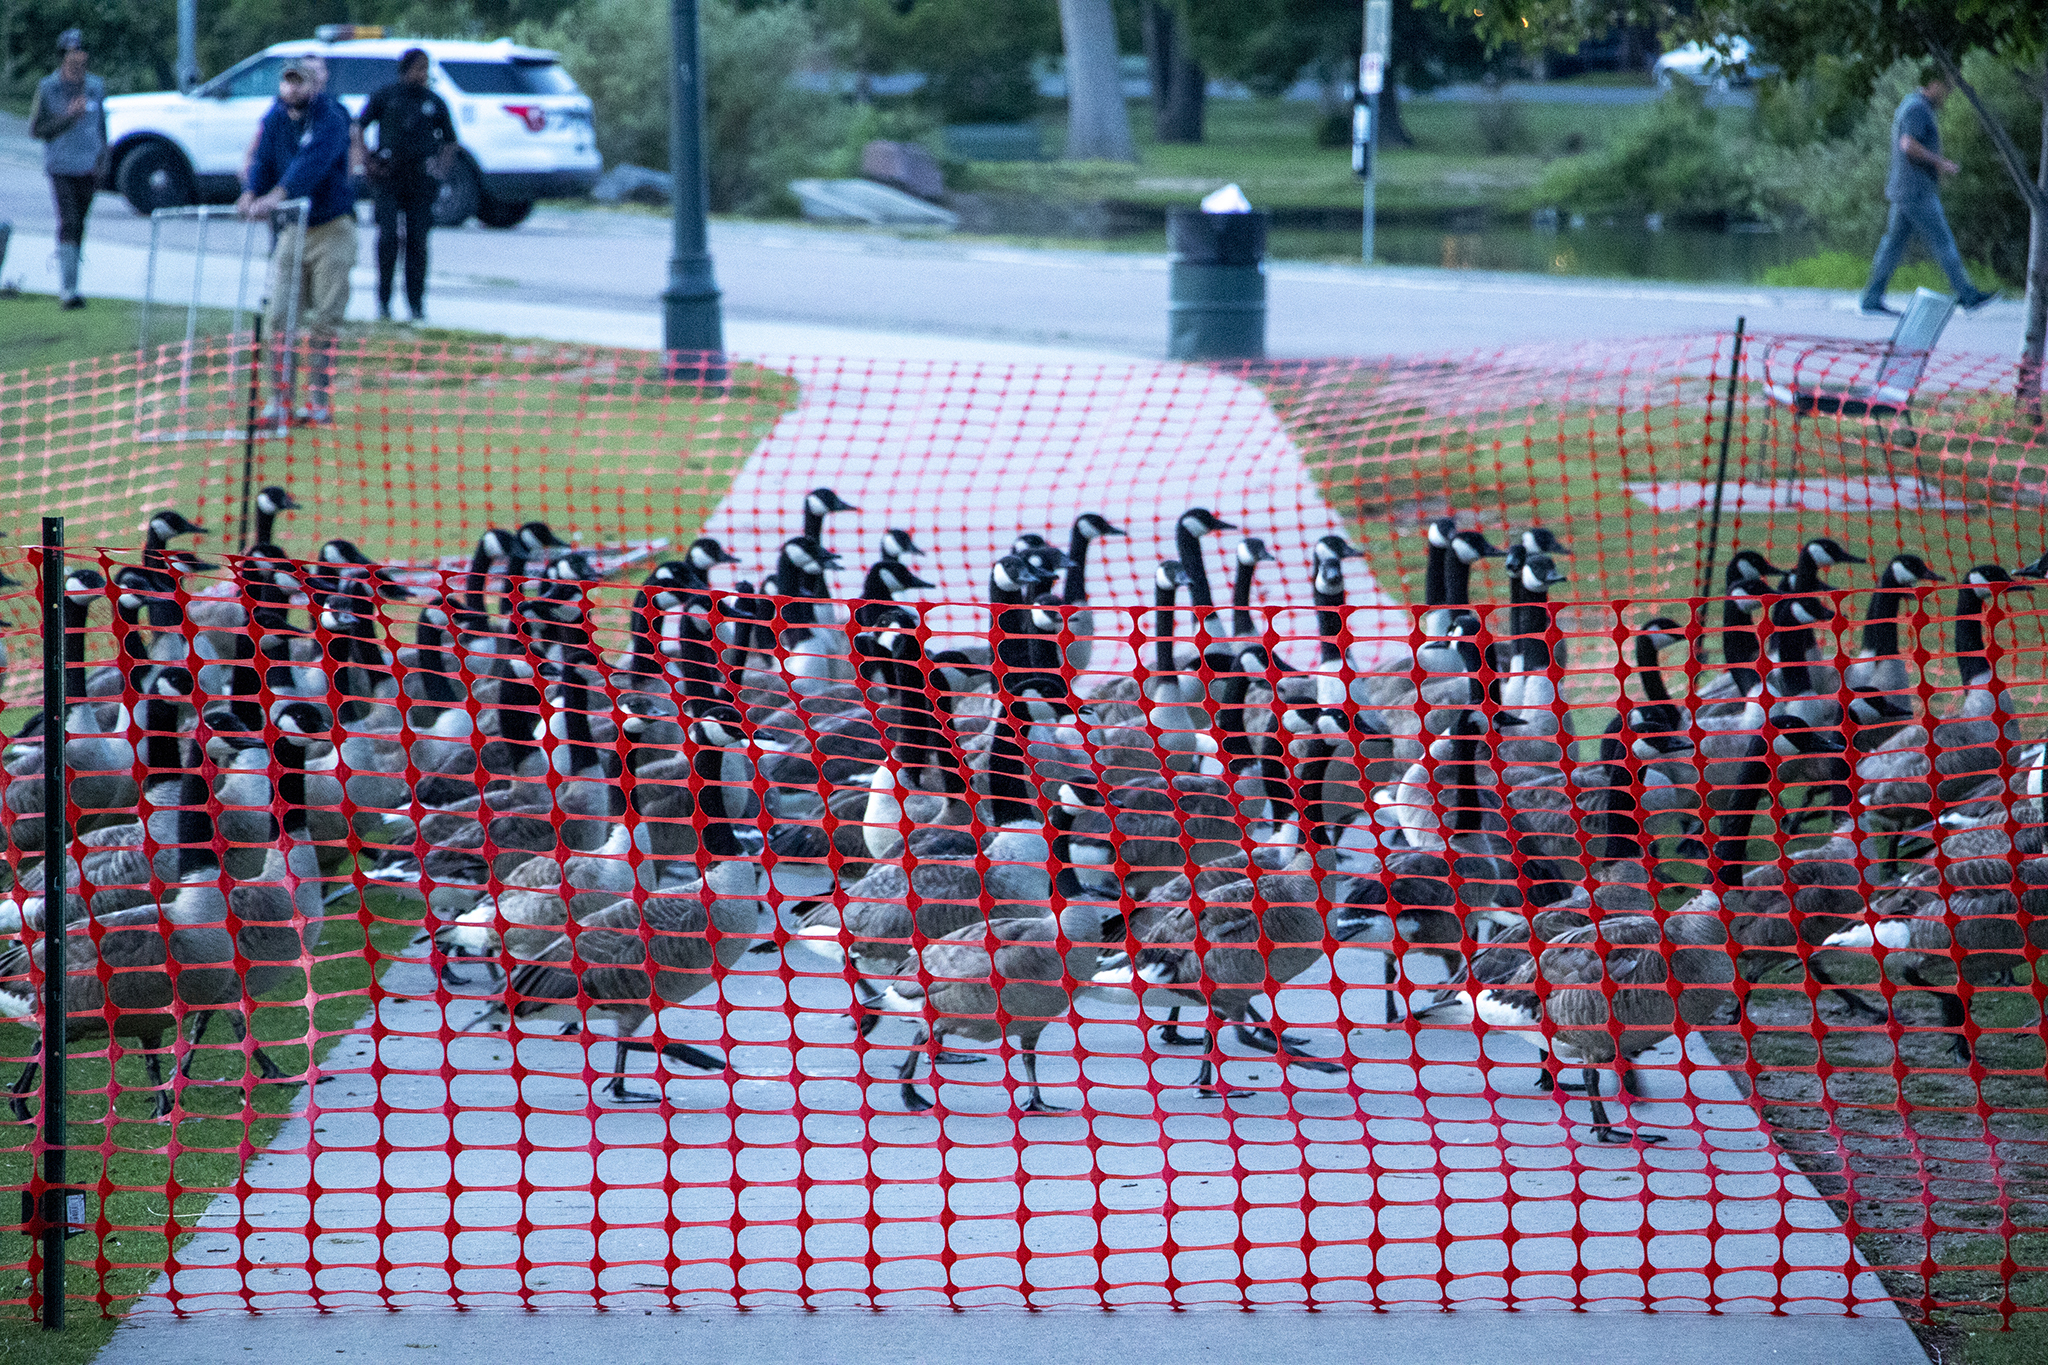 Wildlife authorities kill over 100 geese at Sloan's Lake as culling enters its second year in Denver